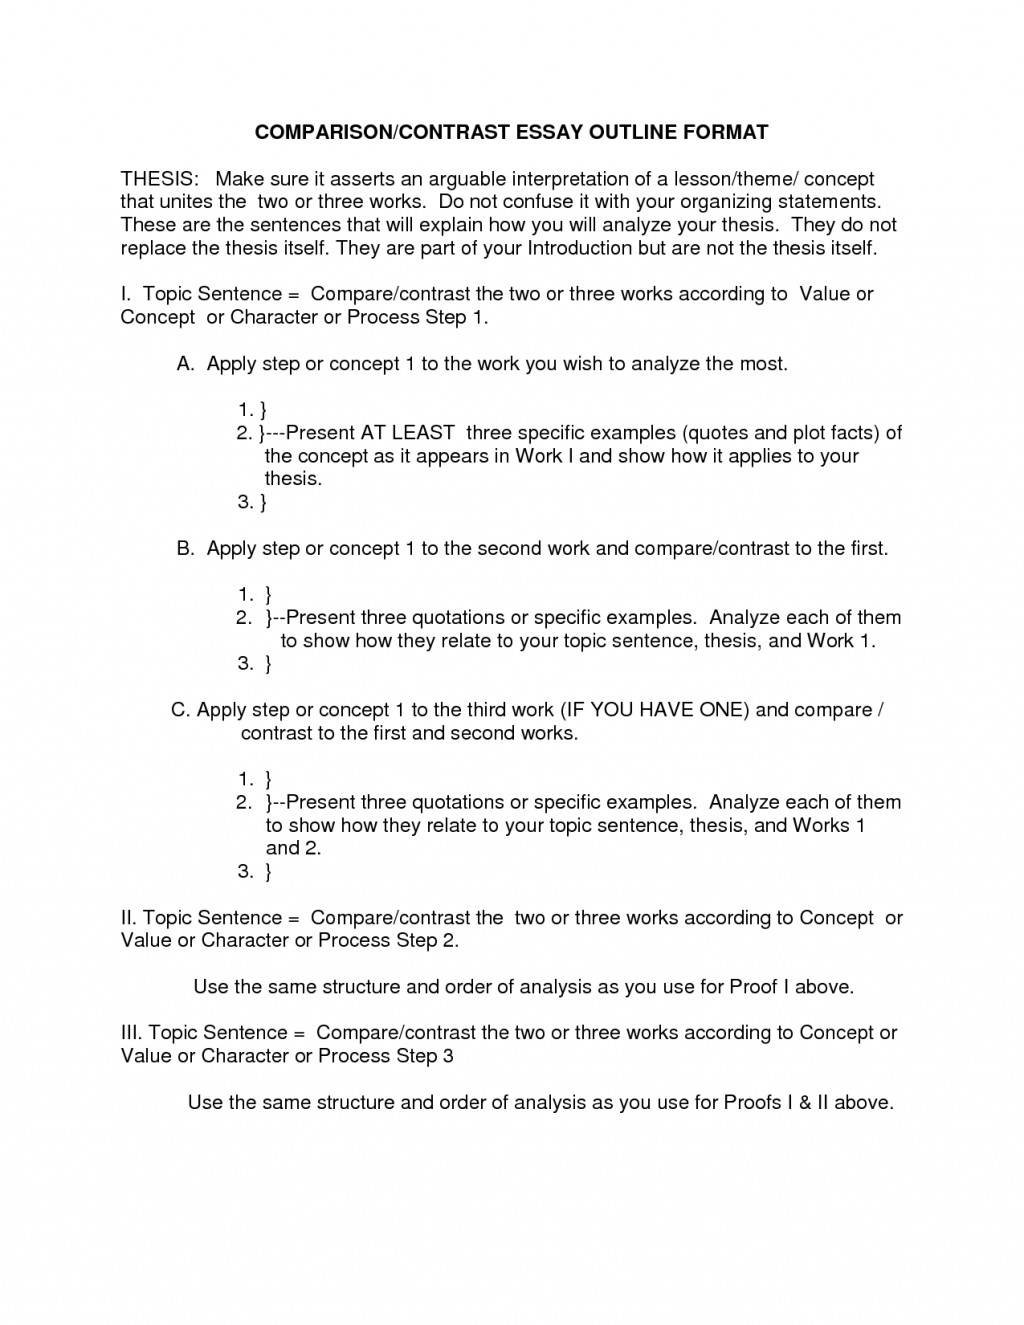 019 Essay Example Examples Of Compare And Contrast Essays Outline Format 2 Unique High School Vs College Topics Sample With Thesis Statement Large